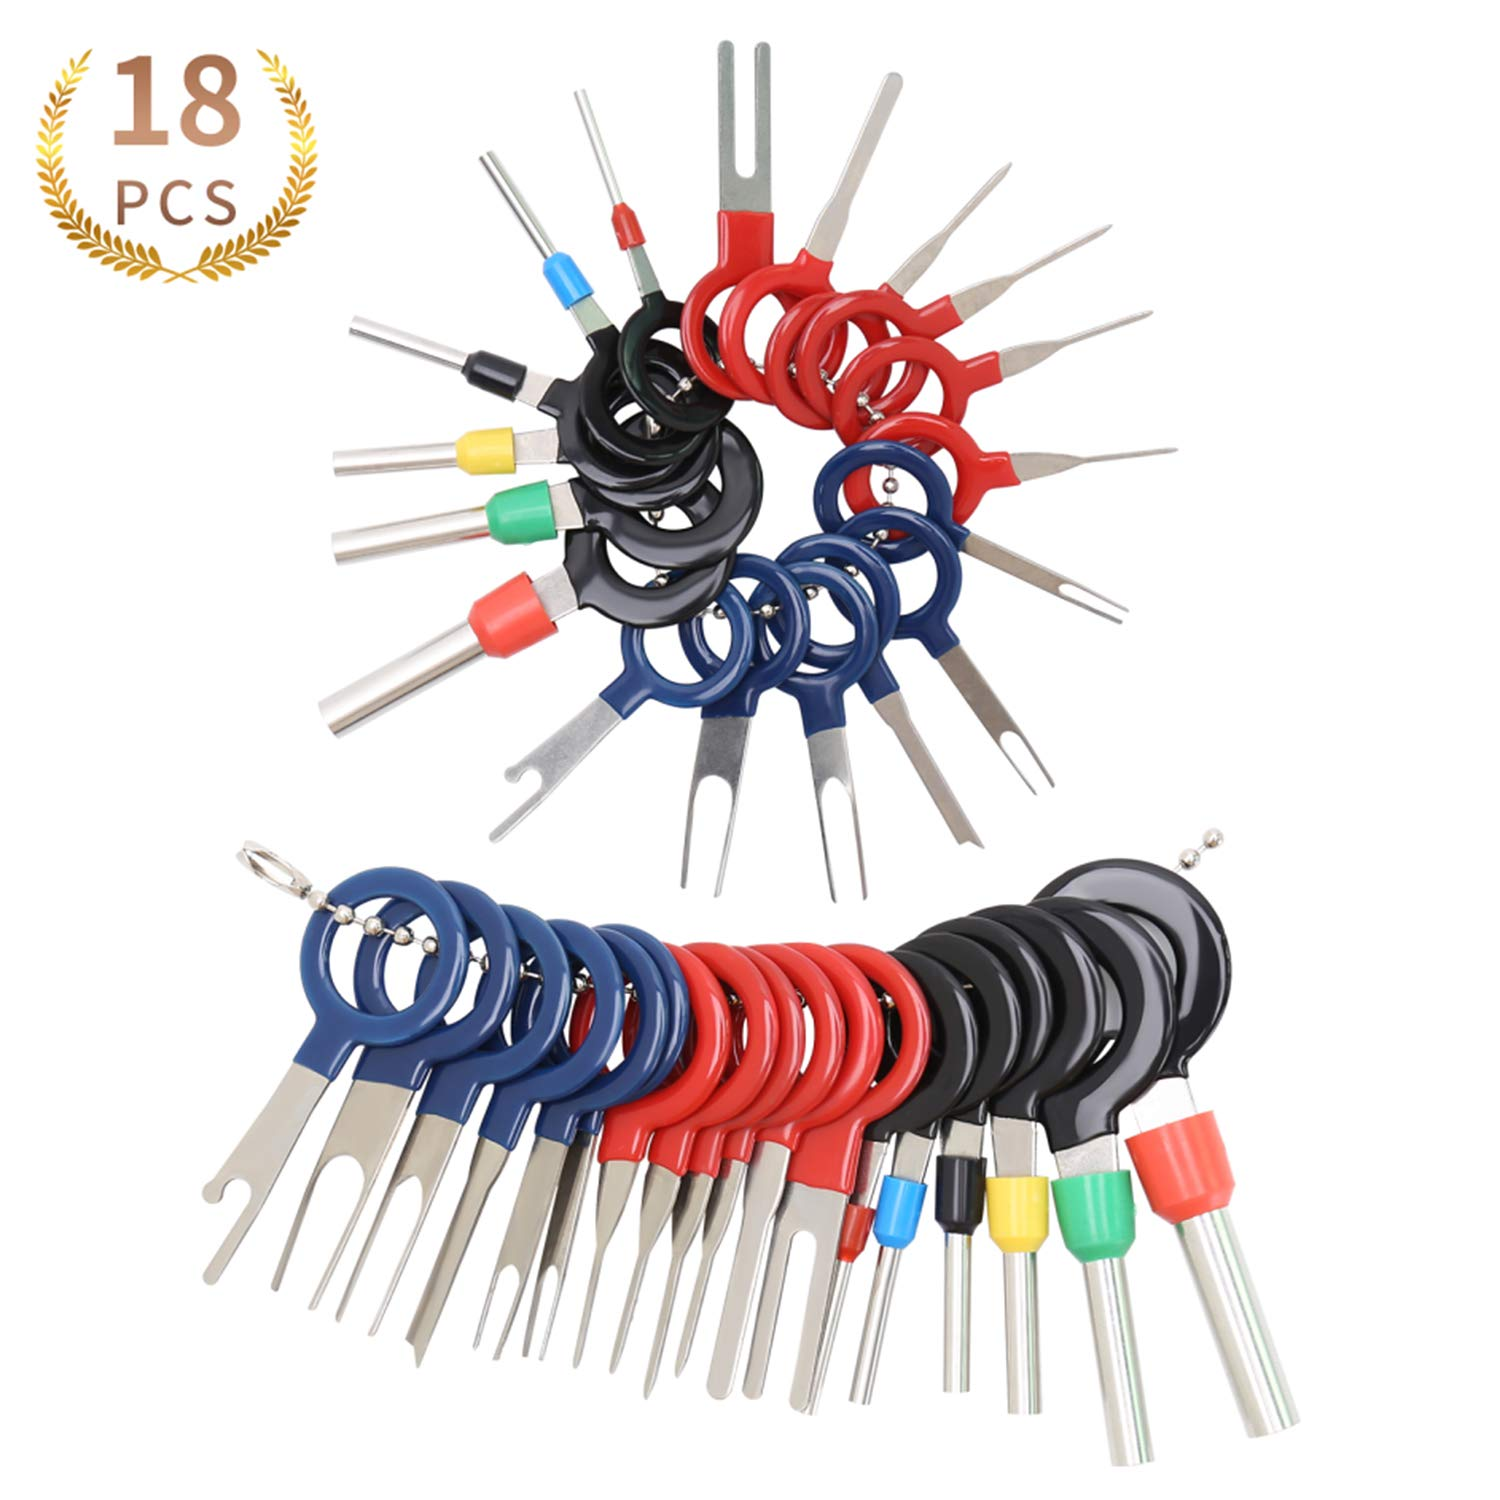 18pcs Auto Terminals Removal Tool,Terminal Removal Tool Kit for Car, Wire Connector Pin Release Extractor Tools Set for Most Connector Terminal 710iZQ83ZSL